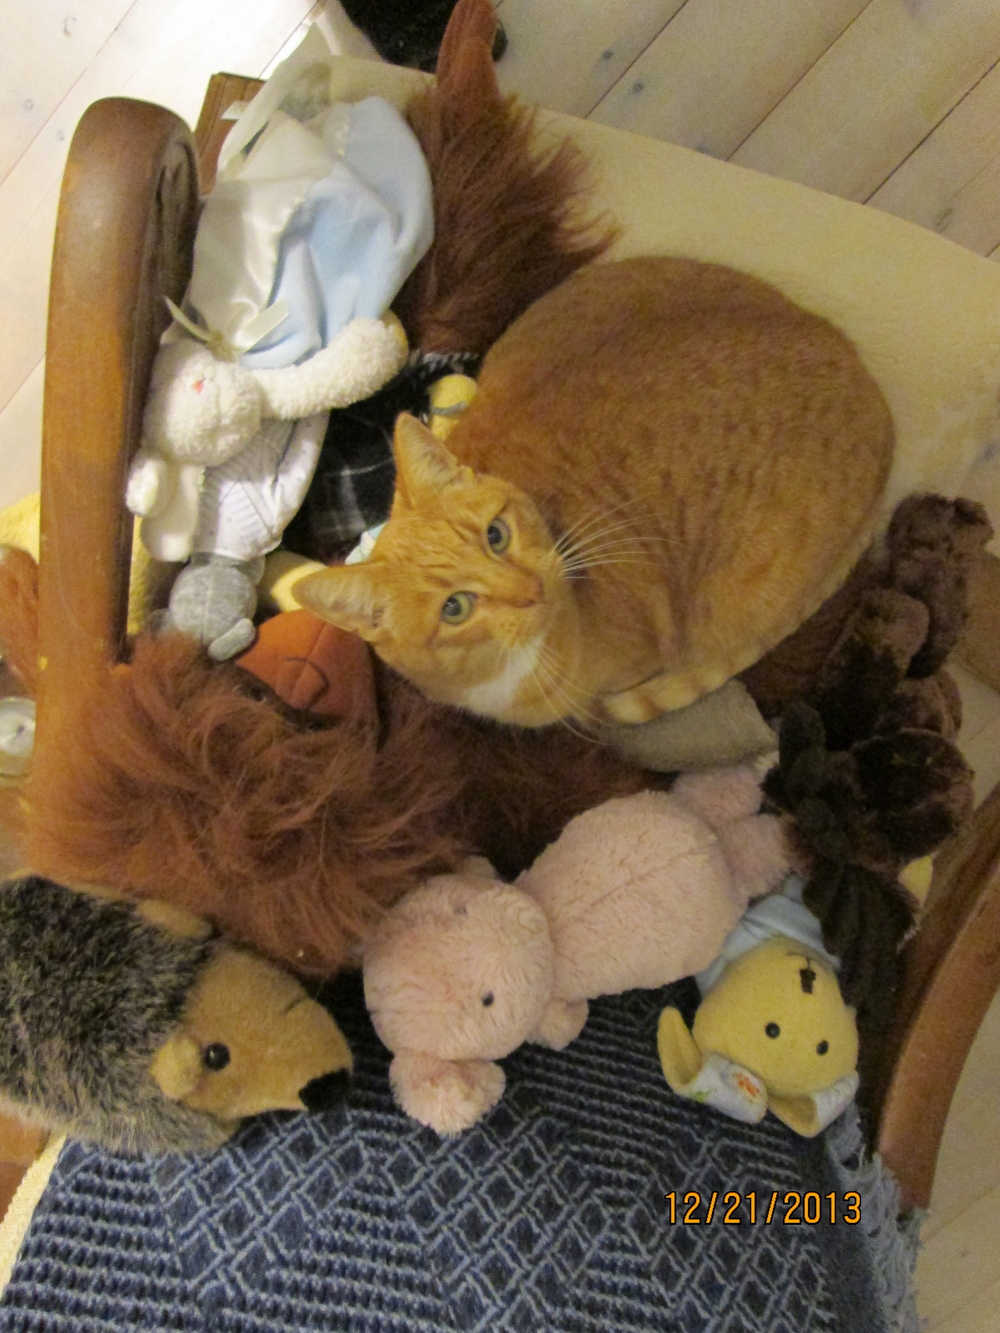 Our cat in her favorite place teeming with friends.